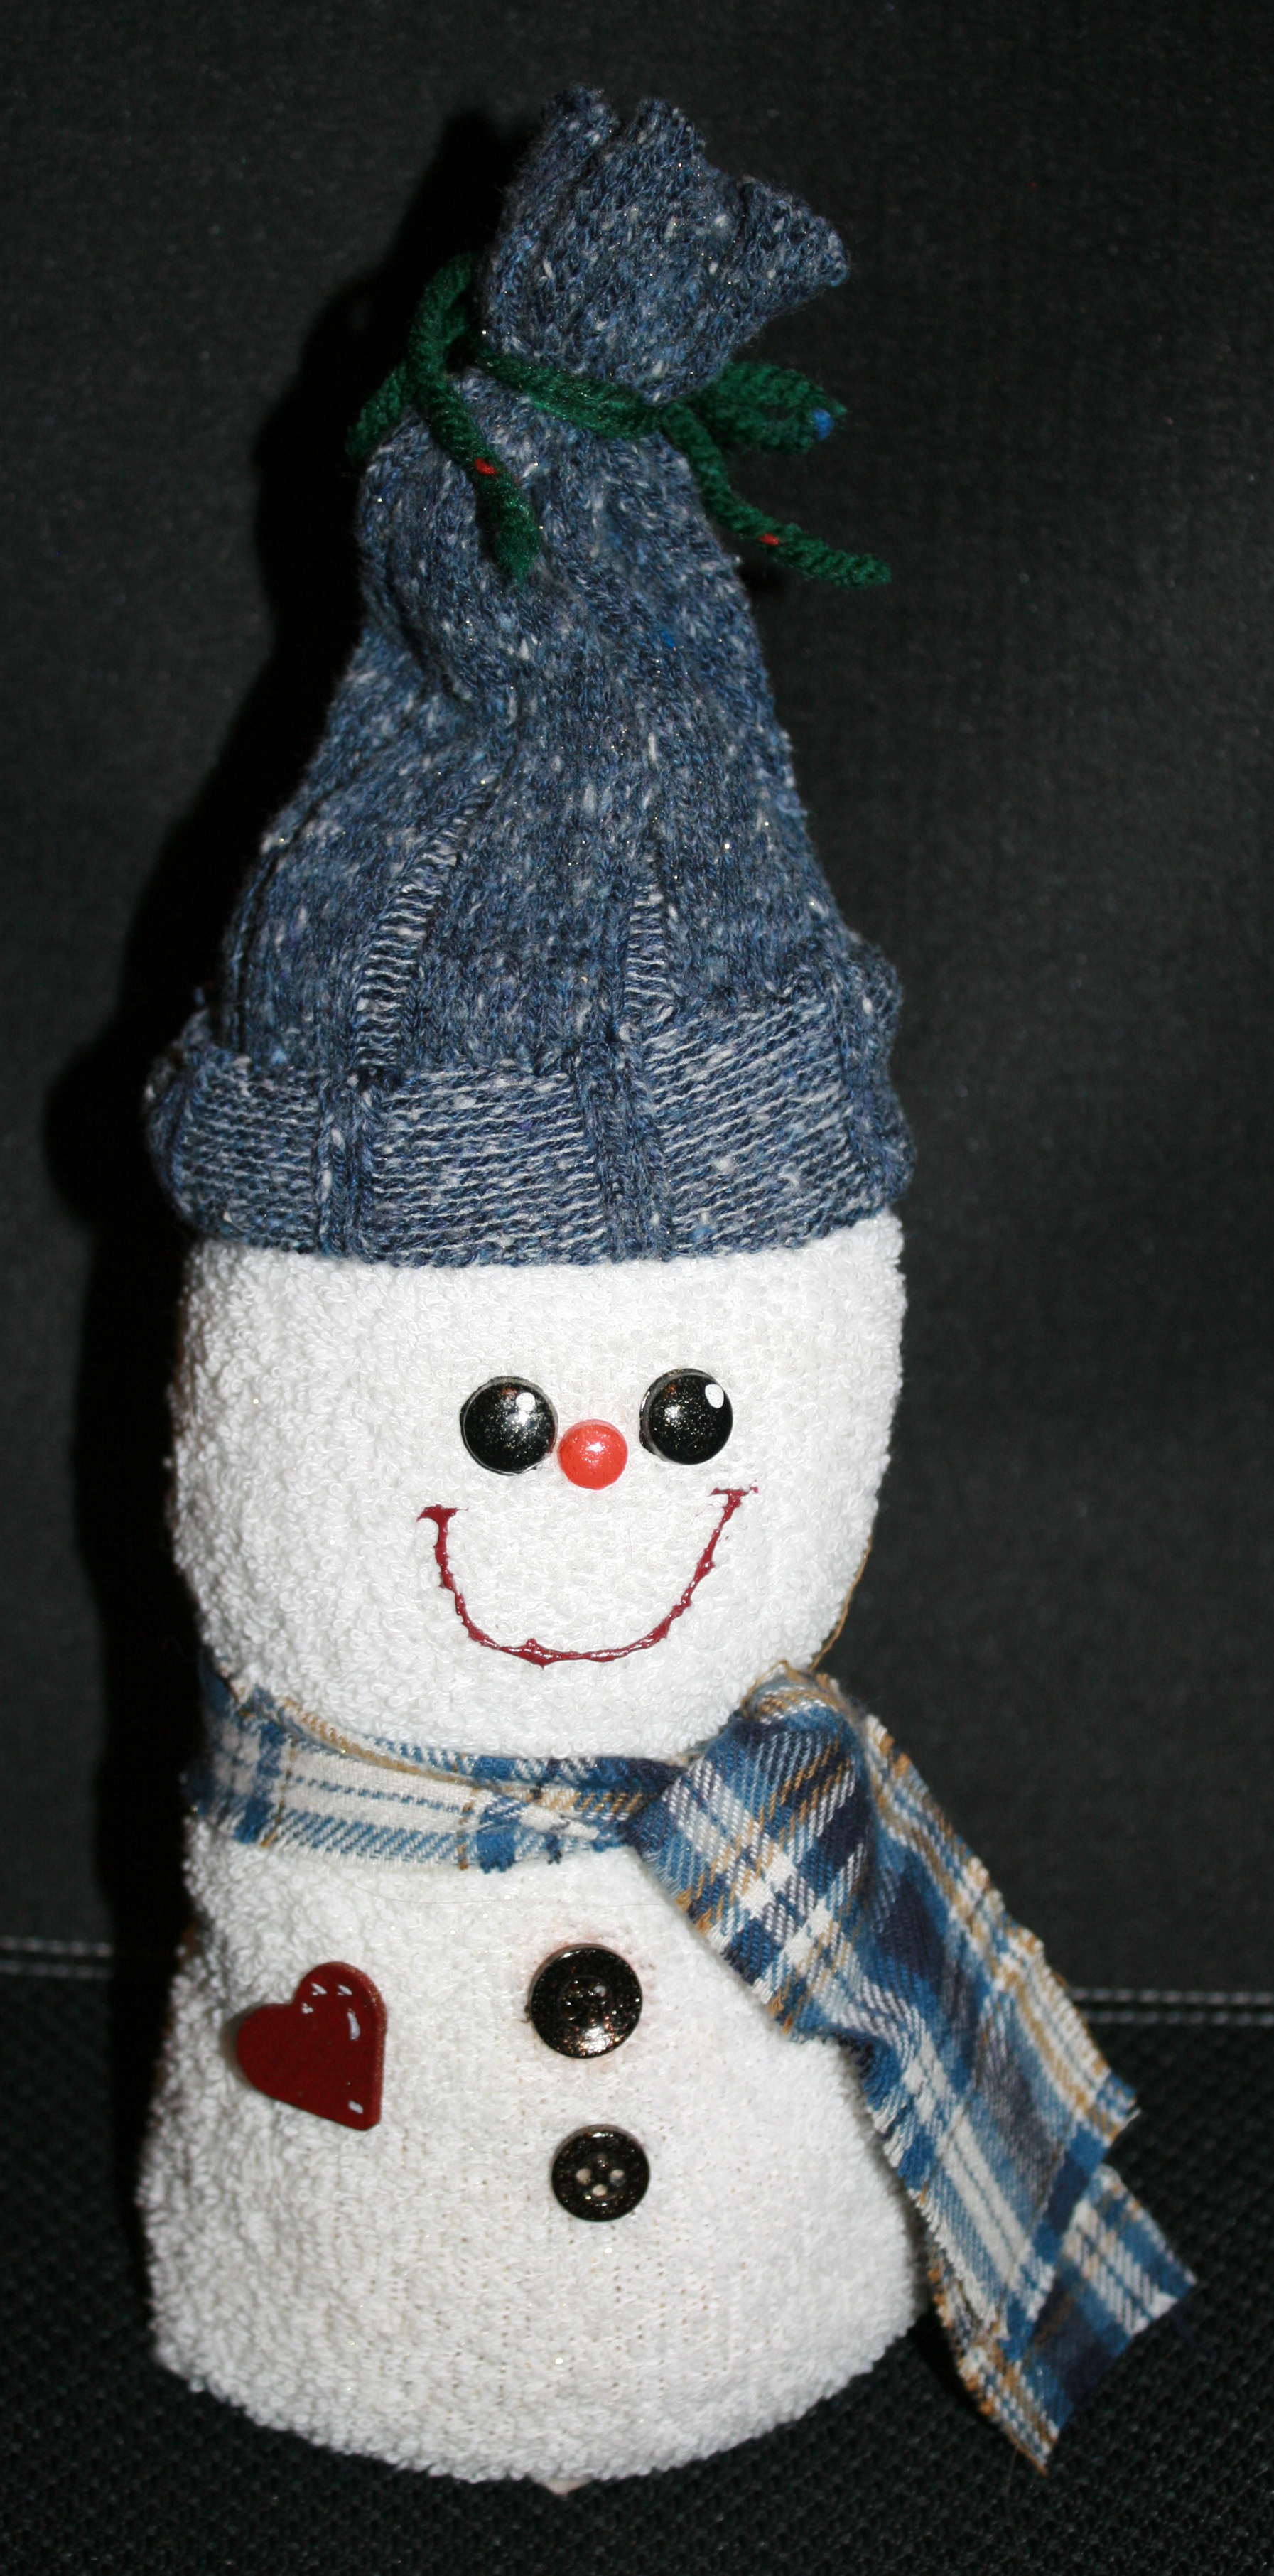 sock snowman, snowman activities, snowman ideas, measurement activities, listening and following direction activities, winter crafts for kids,